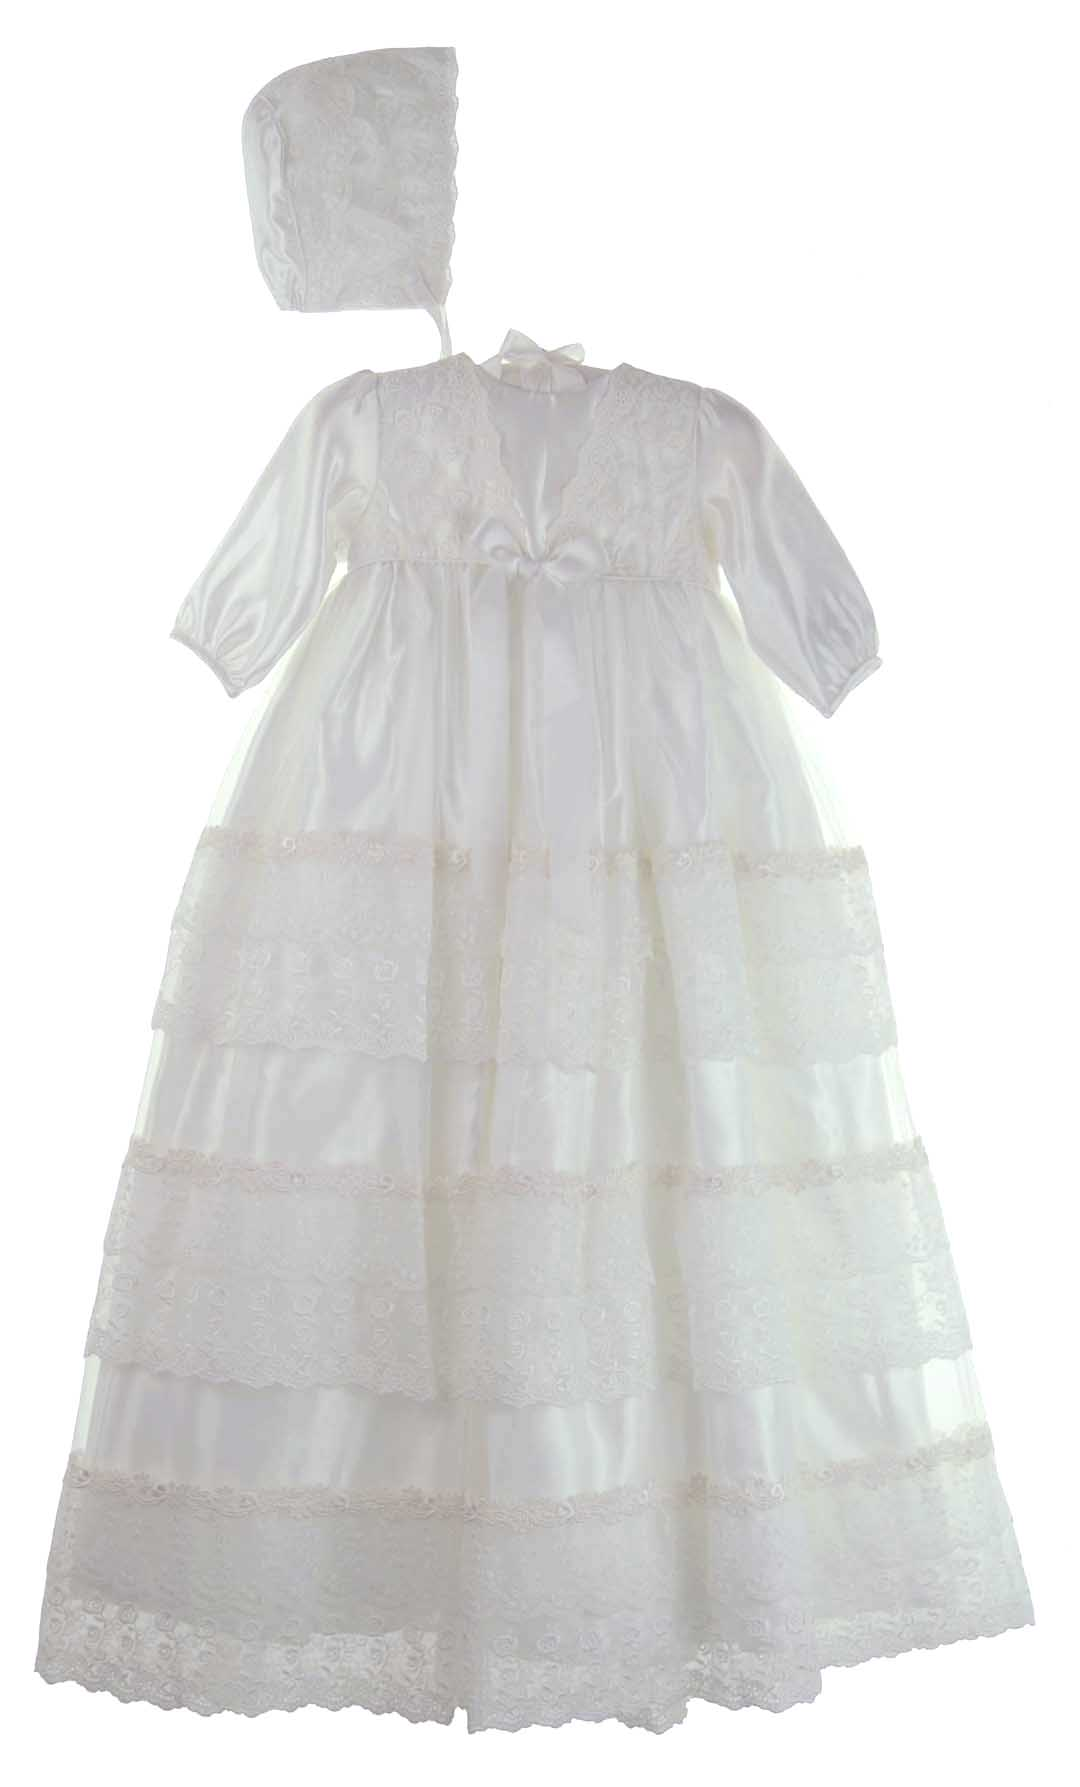 Sarah Louise white satin christening gown,white satin and lace ...